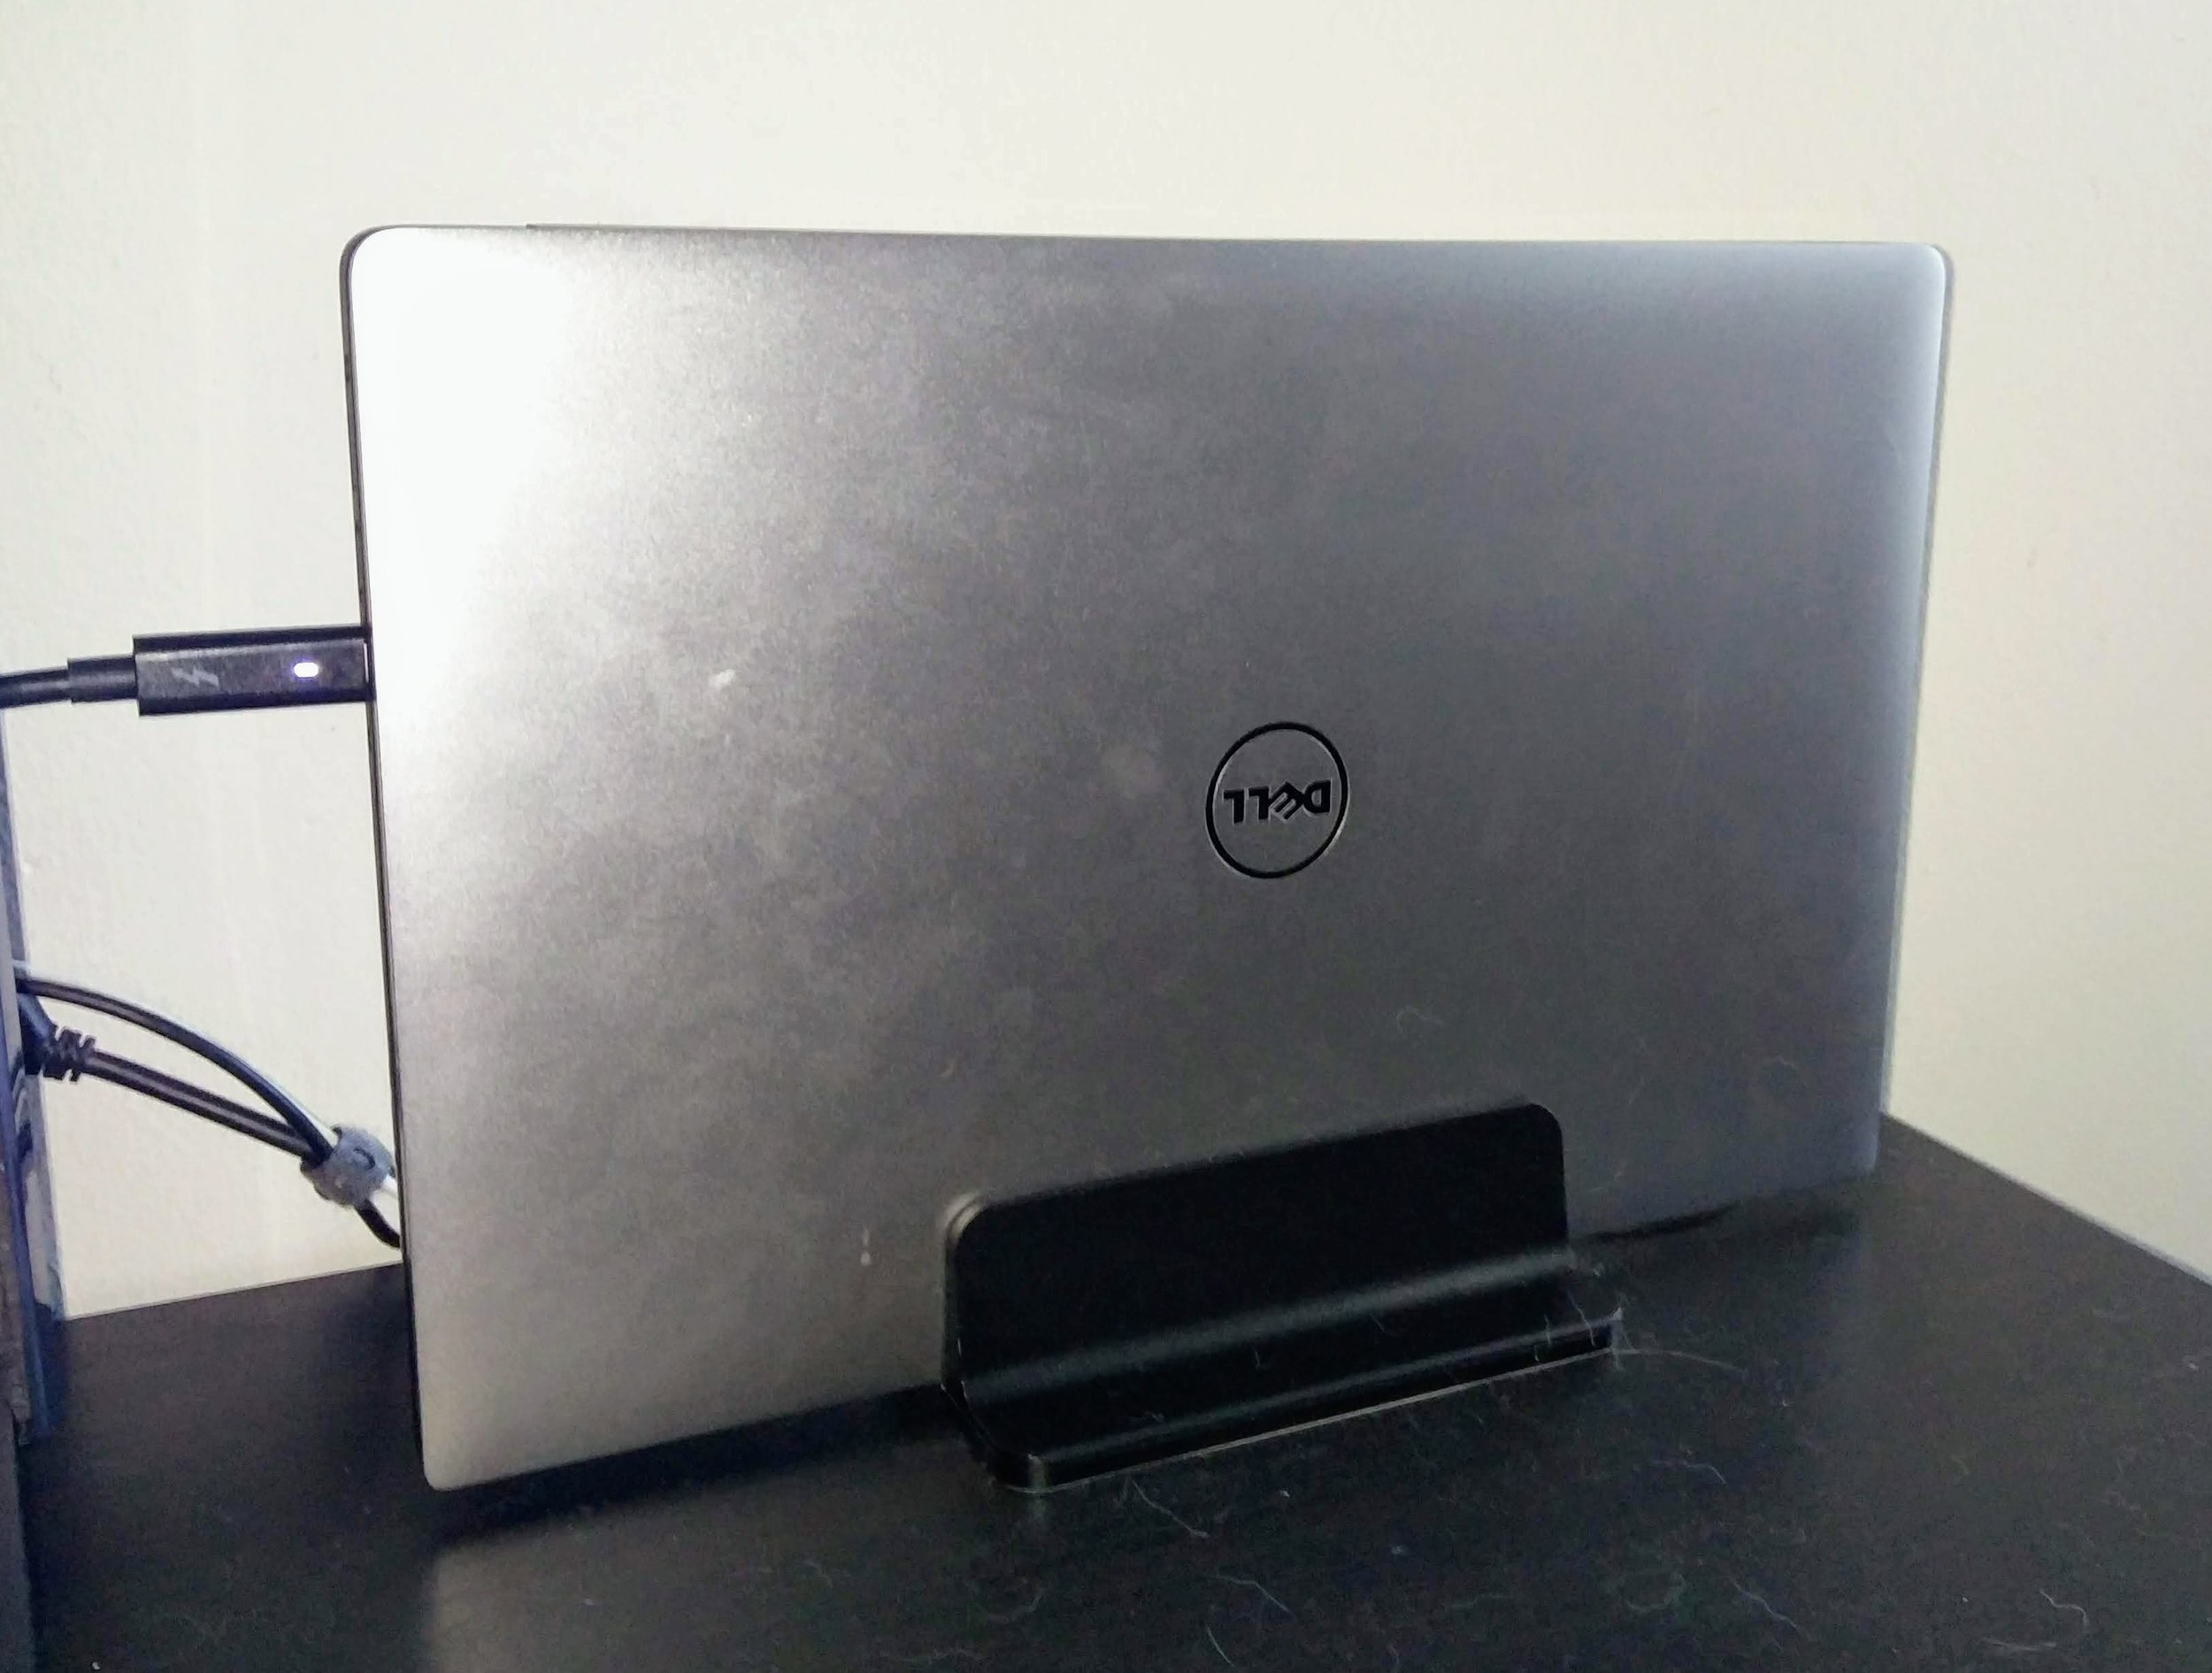 Dell Laptop docked in its stand with a Thunderbolt Connector